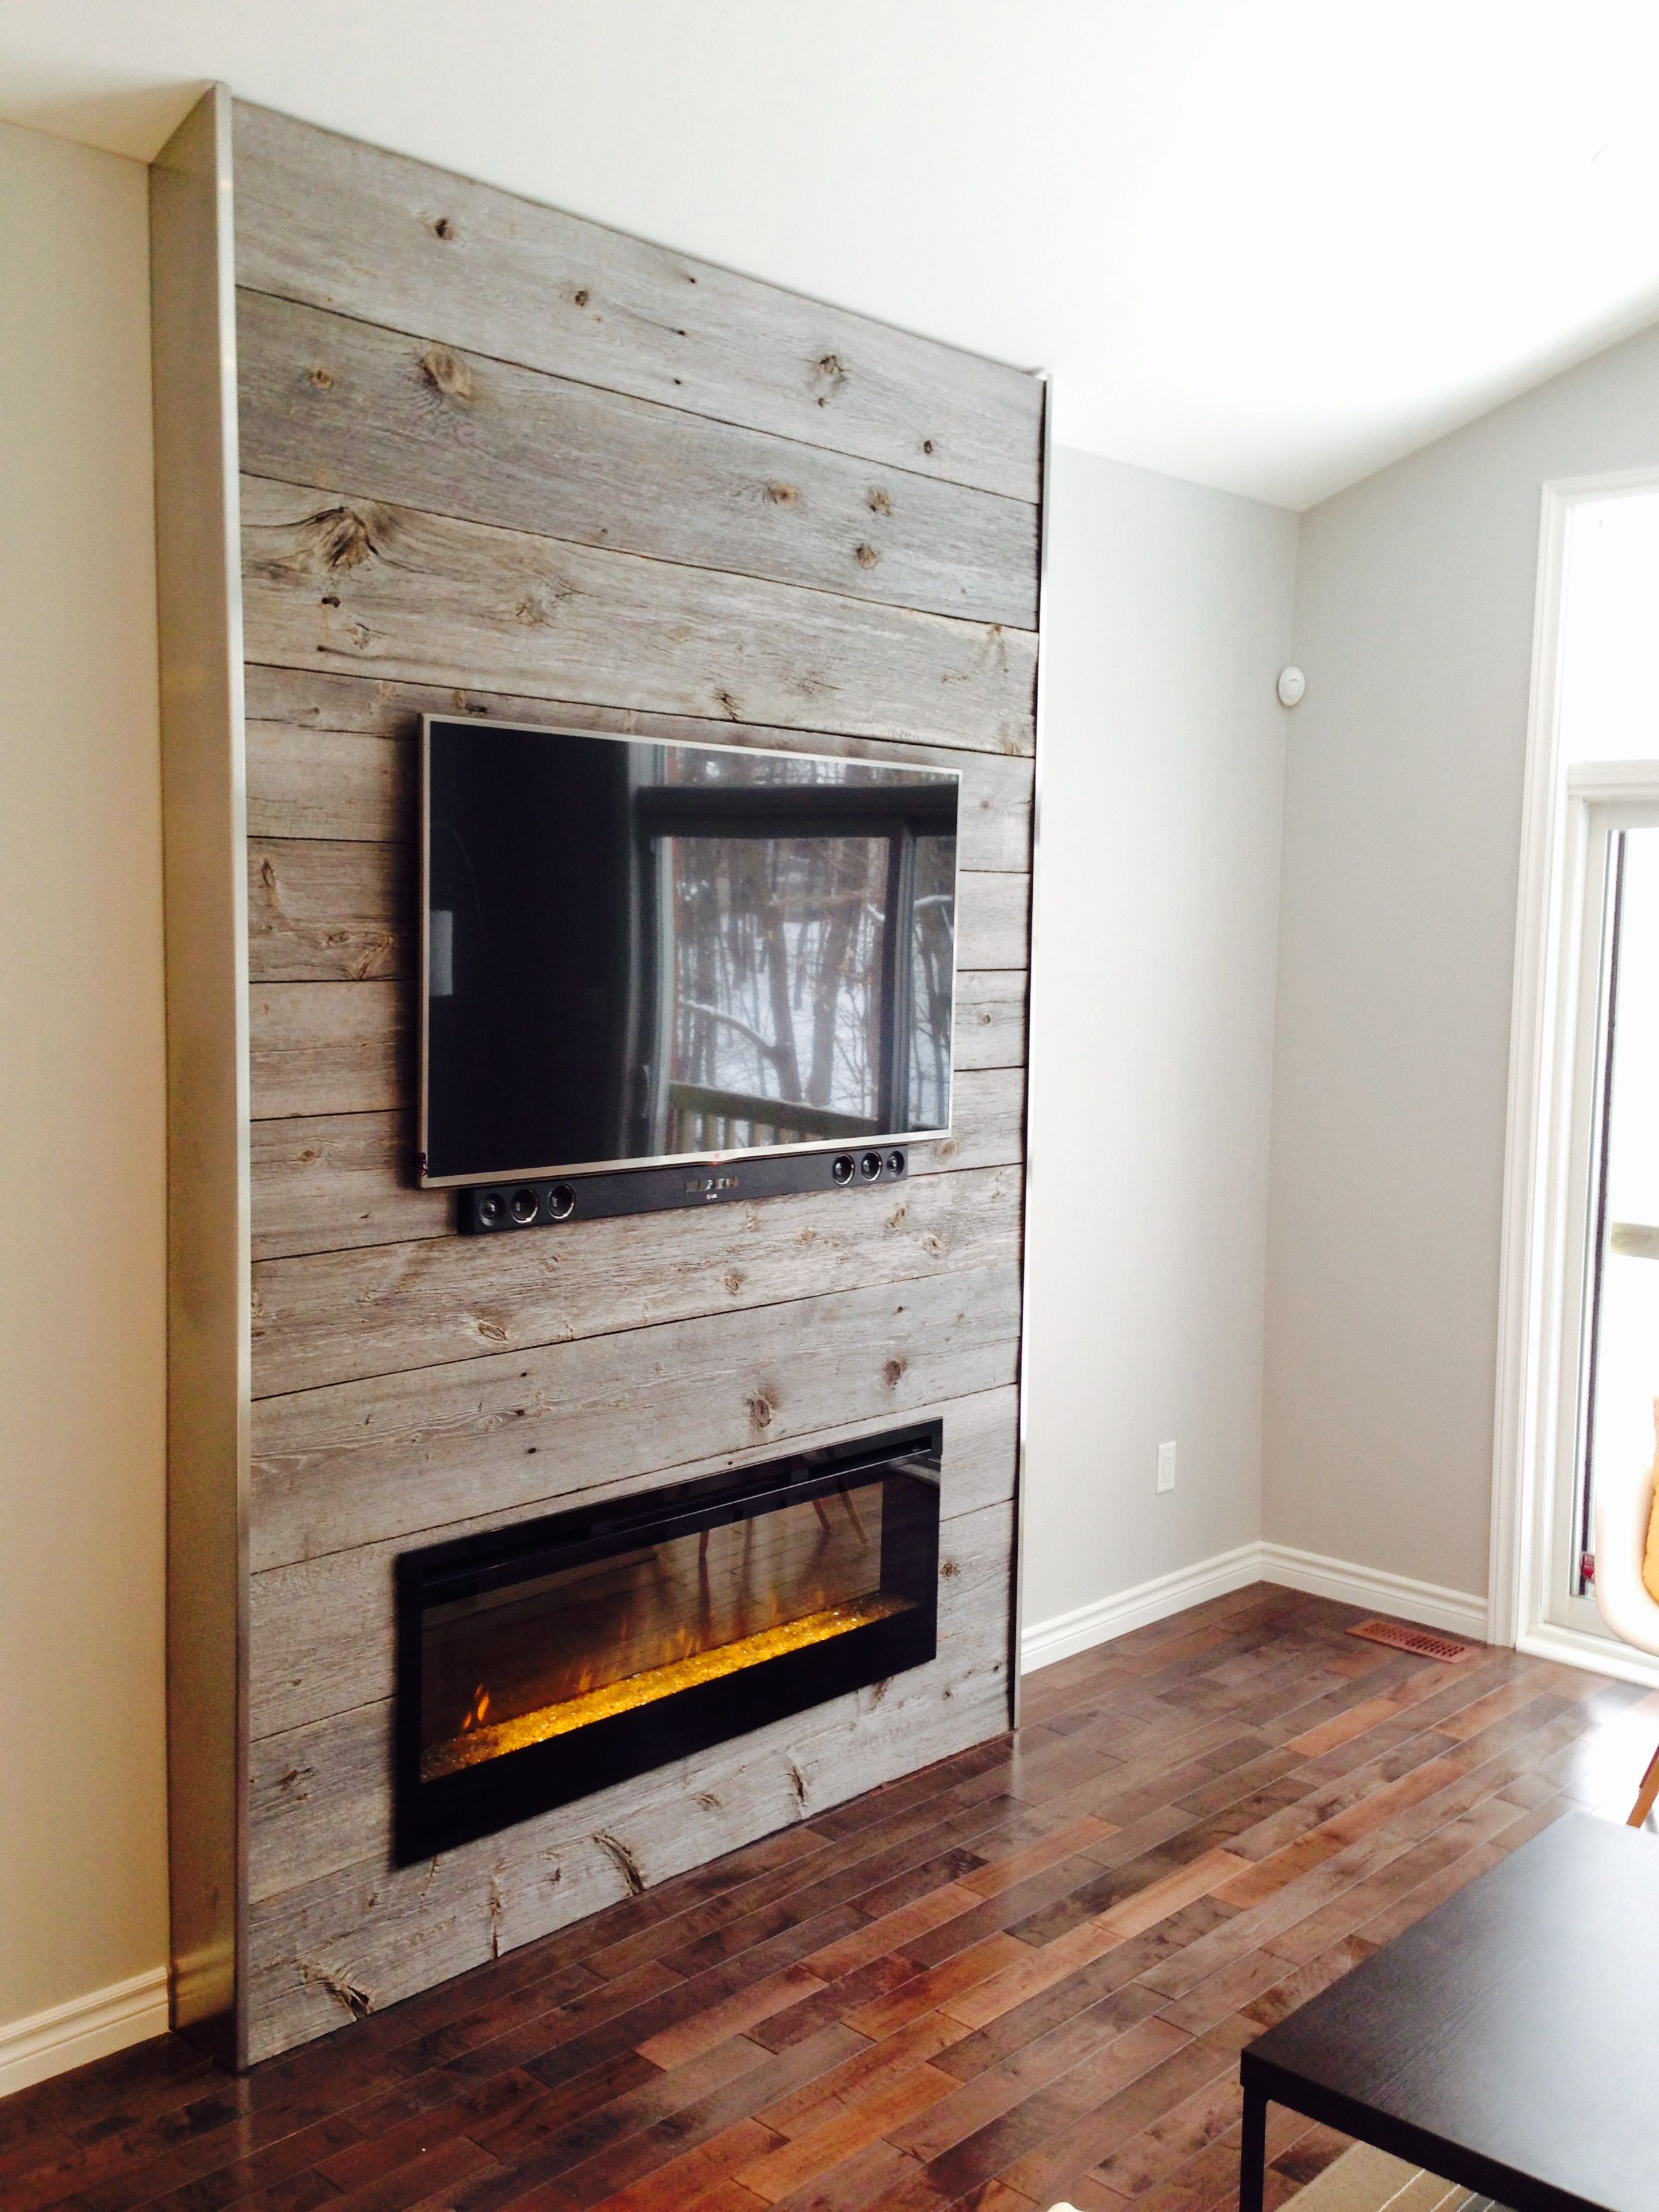 Living Room Feature Wall Design: Fireplace Feature Wall Completed With Grey Reclaimed Barn